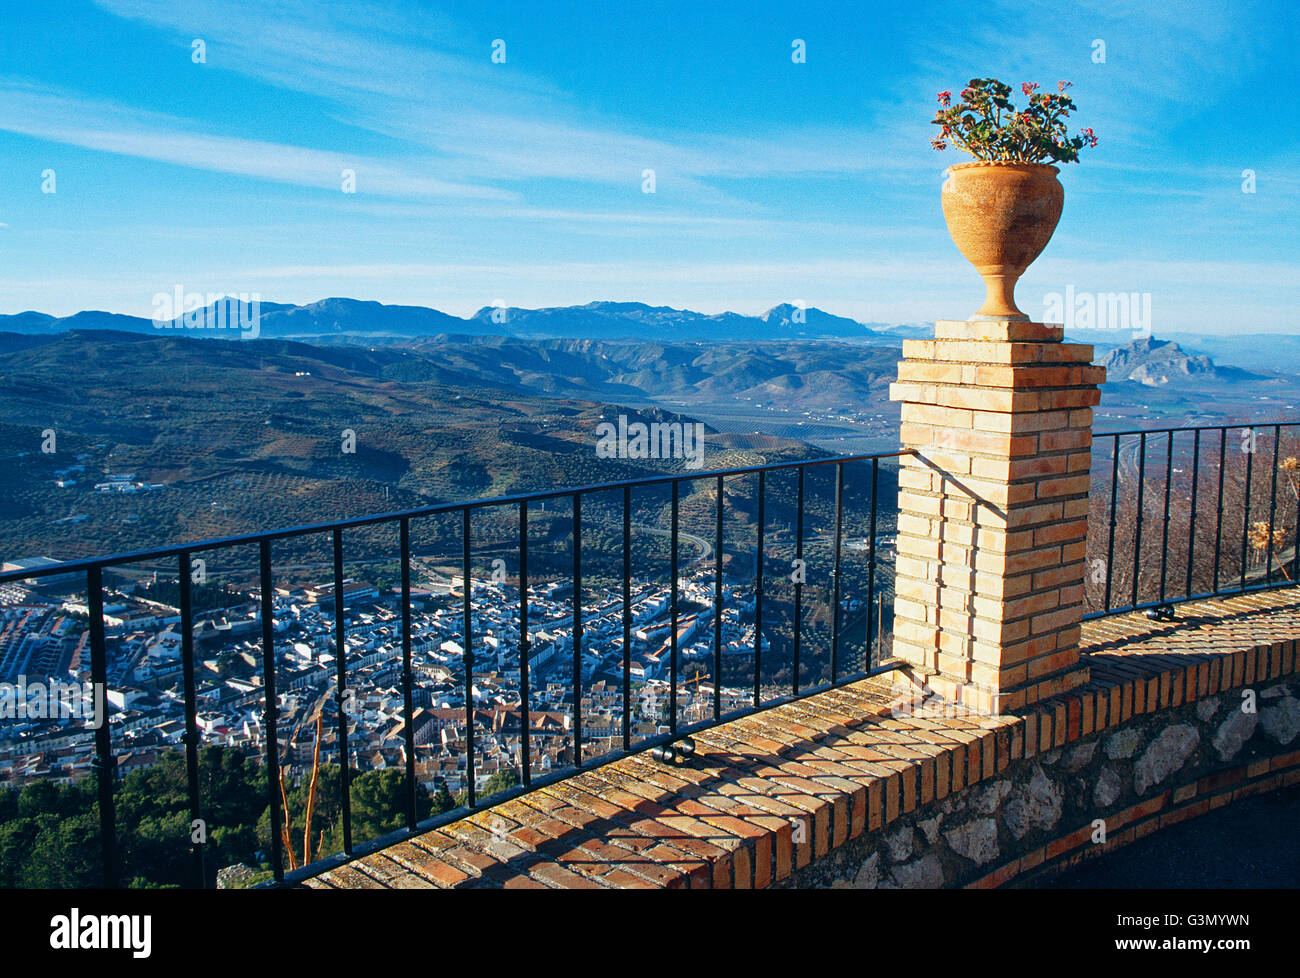 View from the viewpoint. Archidona, Malaga province, Andalucia, Spain. - Stock Image